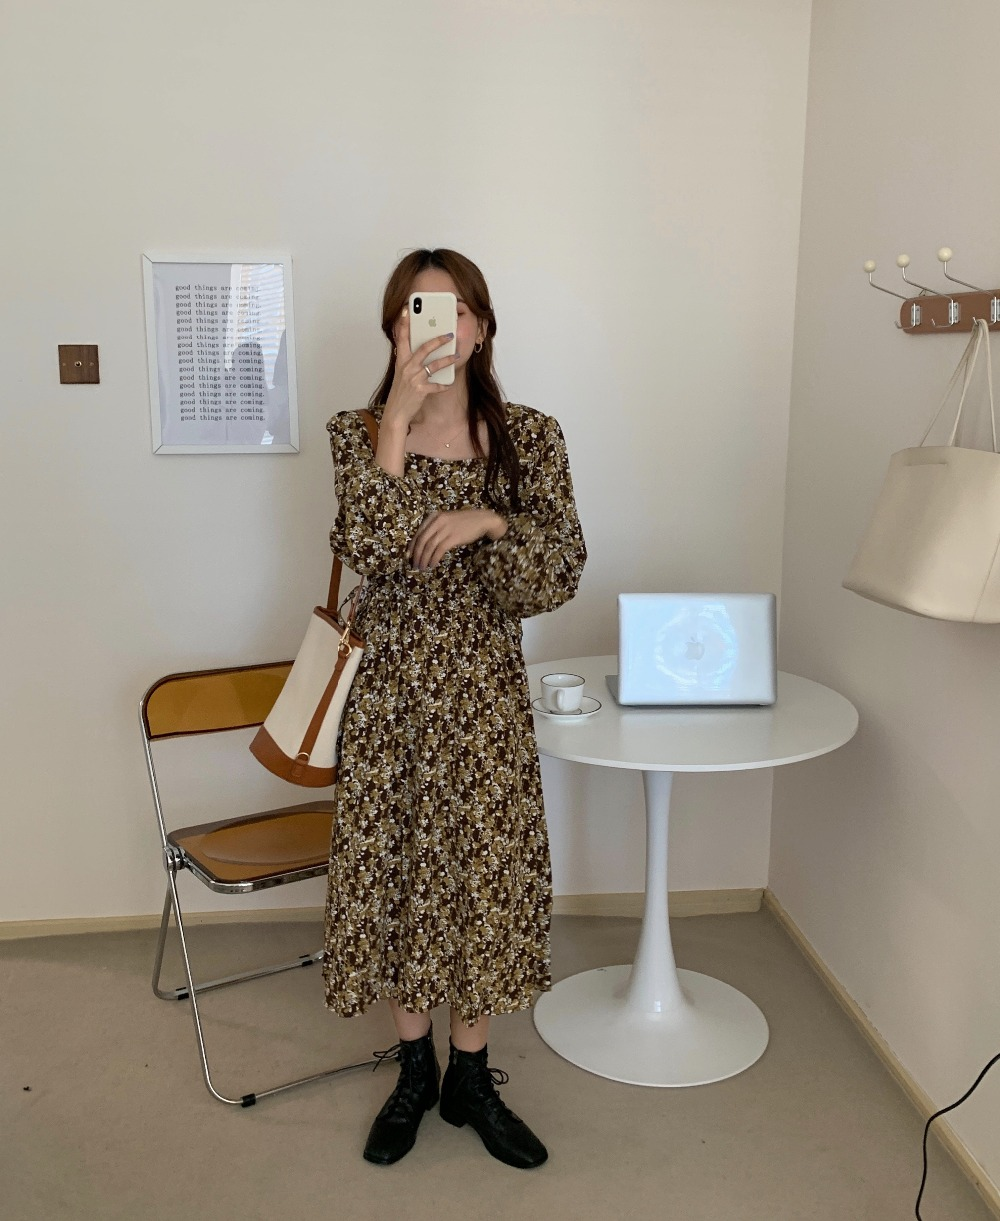 Hcc73754cad294be3b10aec505559d76c2 - Autumn Square Collar Lantern Sleeves Floral Print Midi Dress